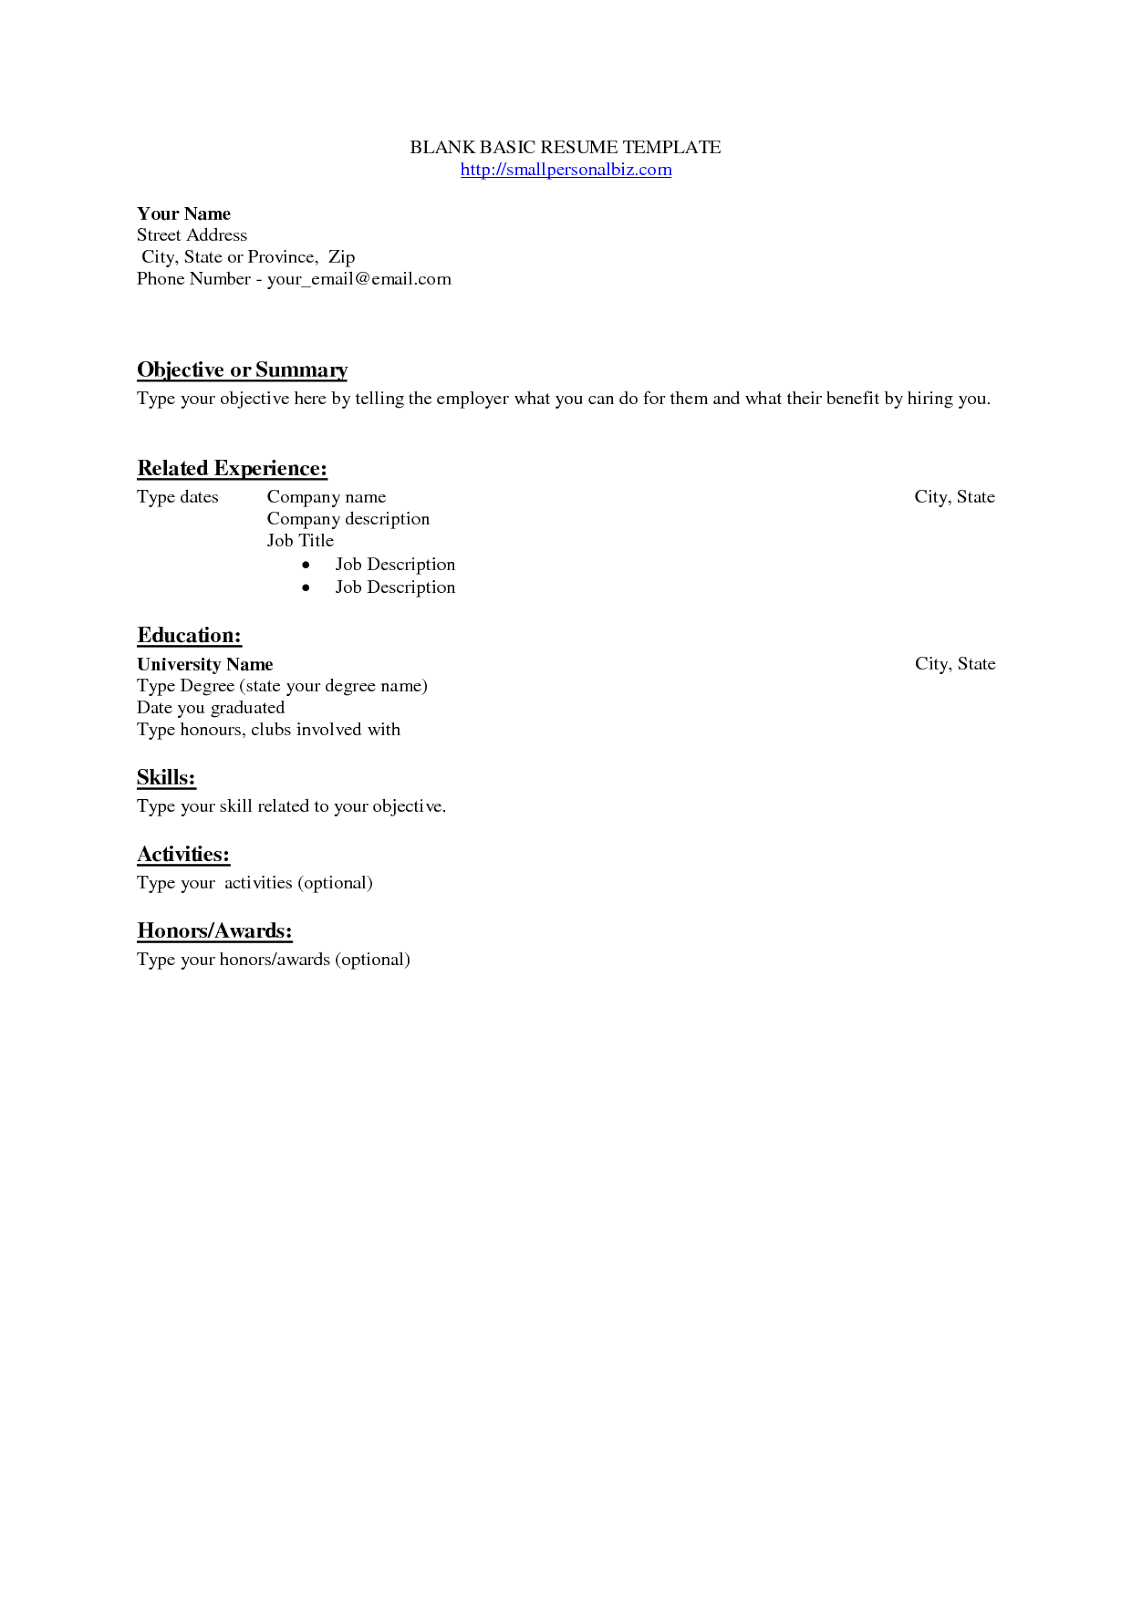 quick resume builder free printable resume outlines blank job resume form printable basic with orvis center com template - Quick Resume Builder Free